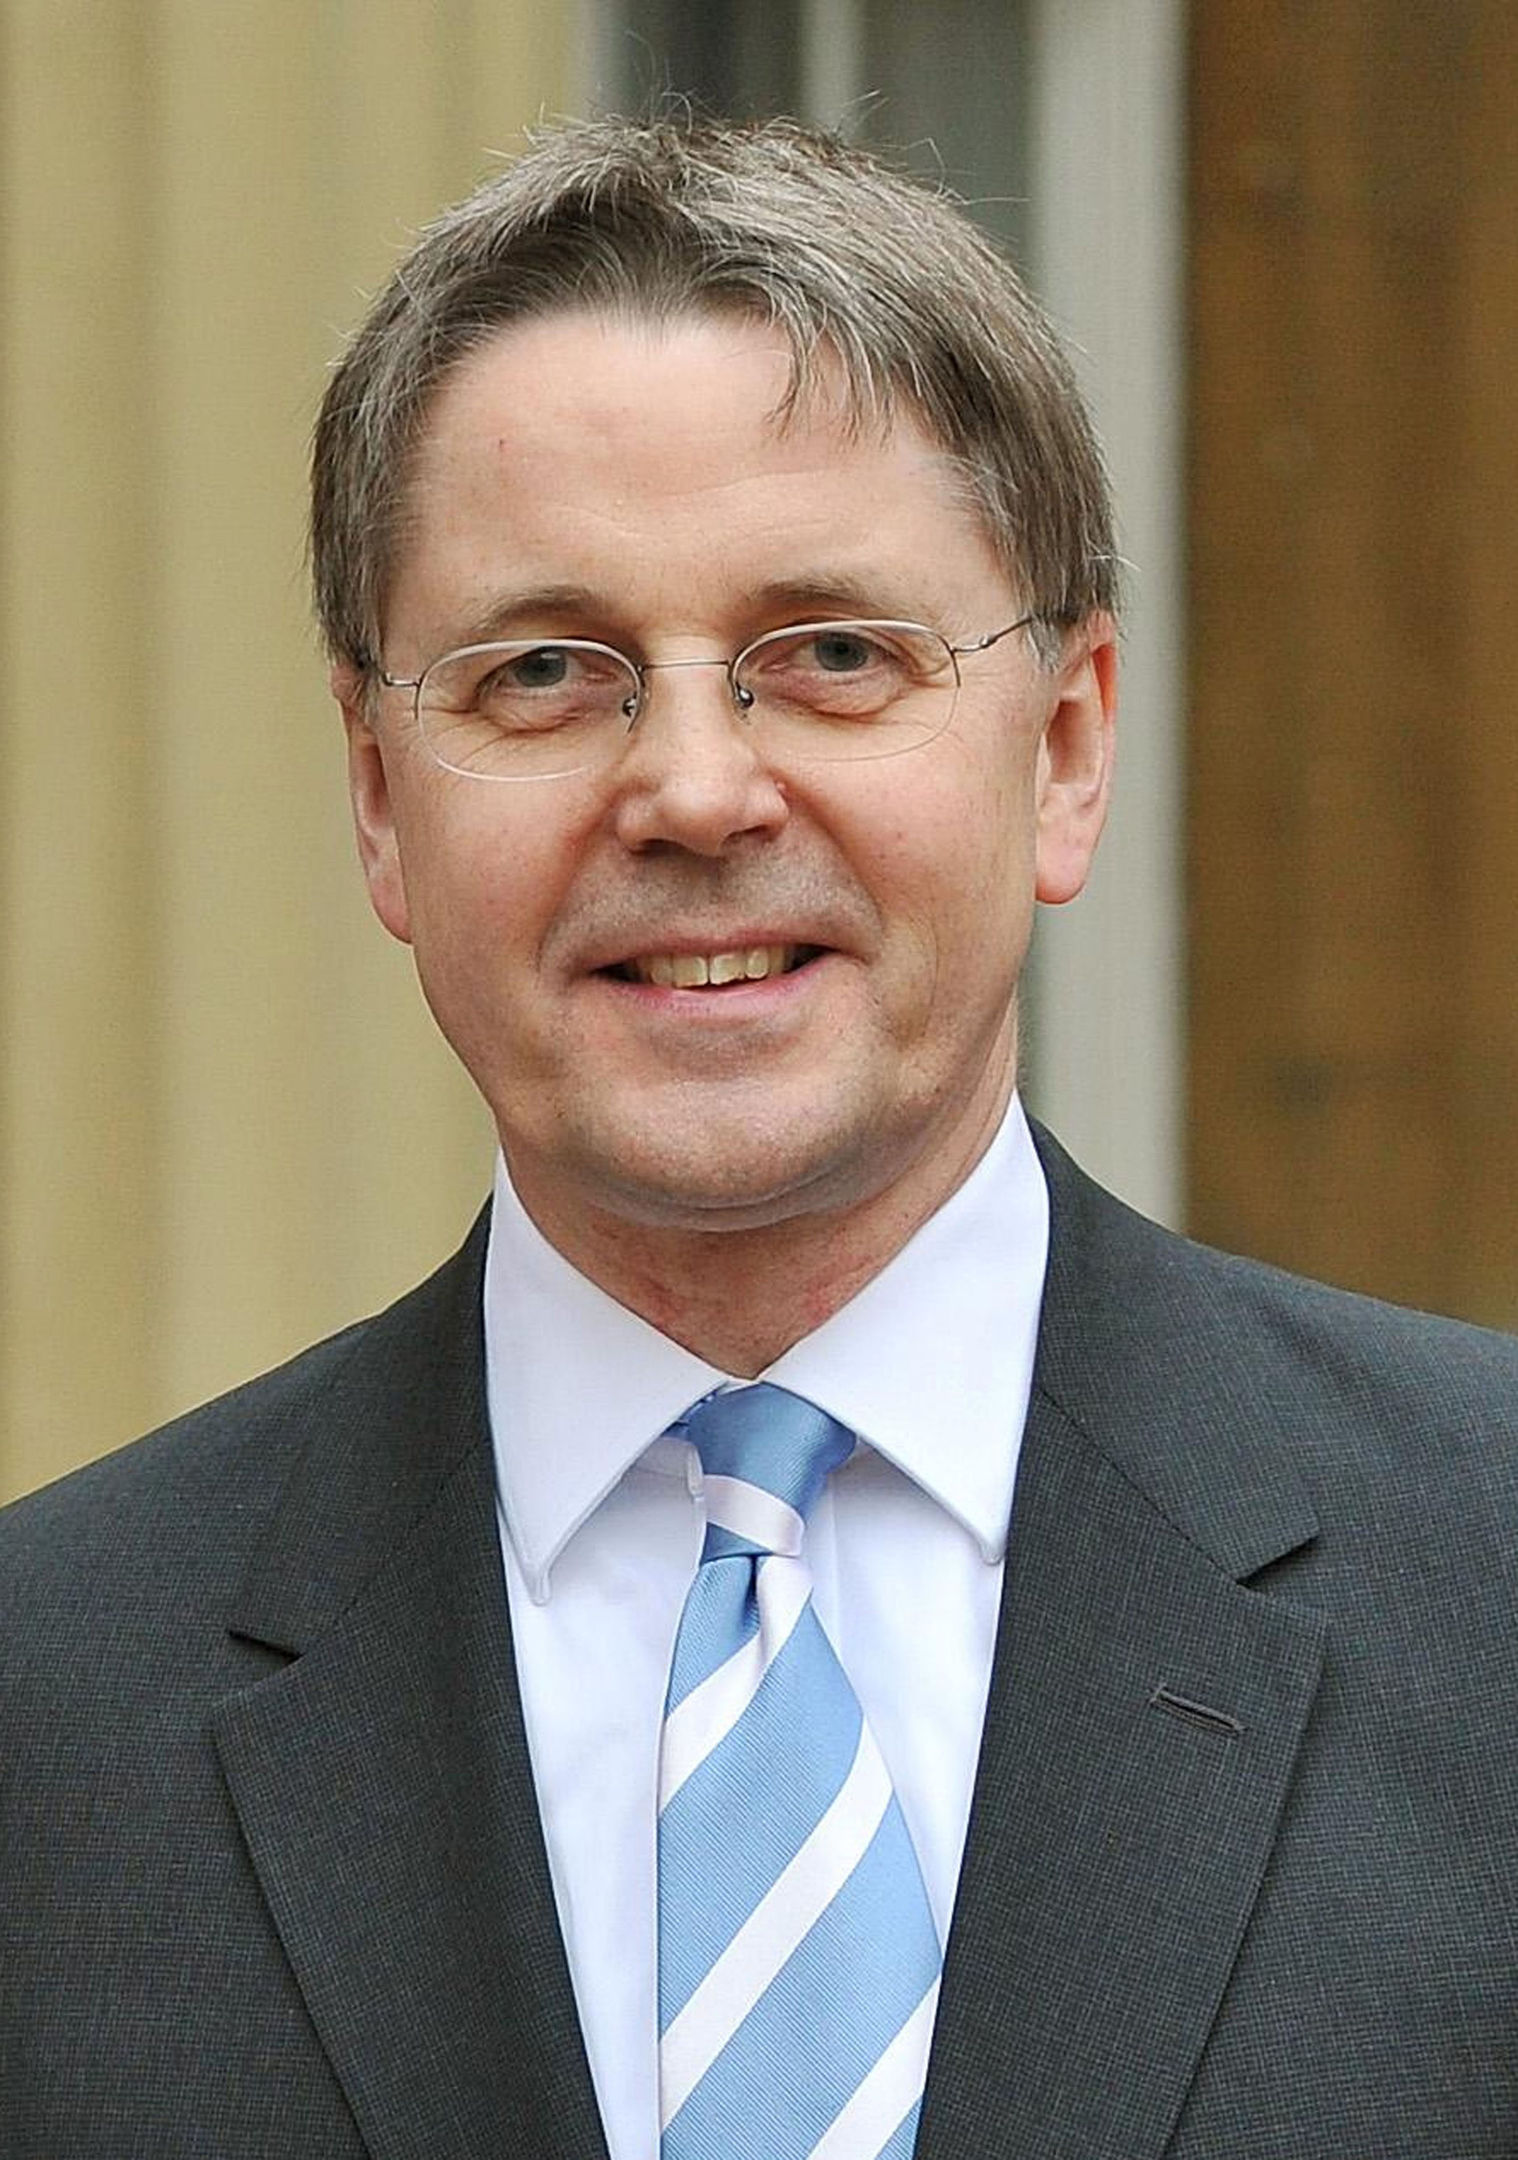 Head of the Civil Service Jeremy Heywood